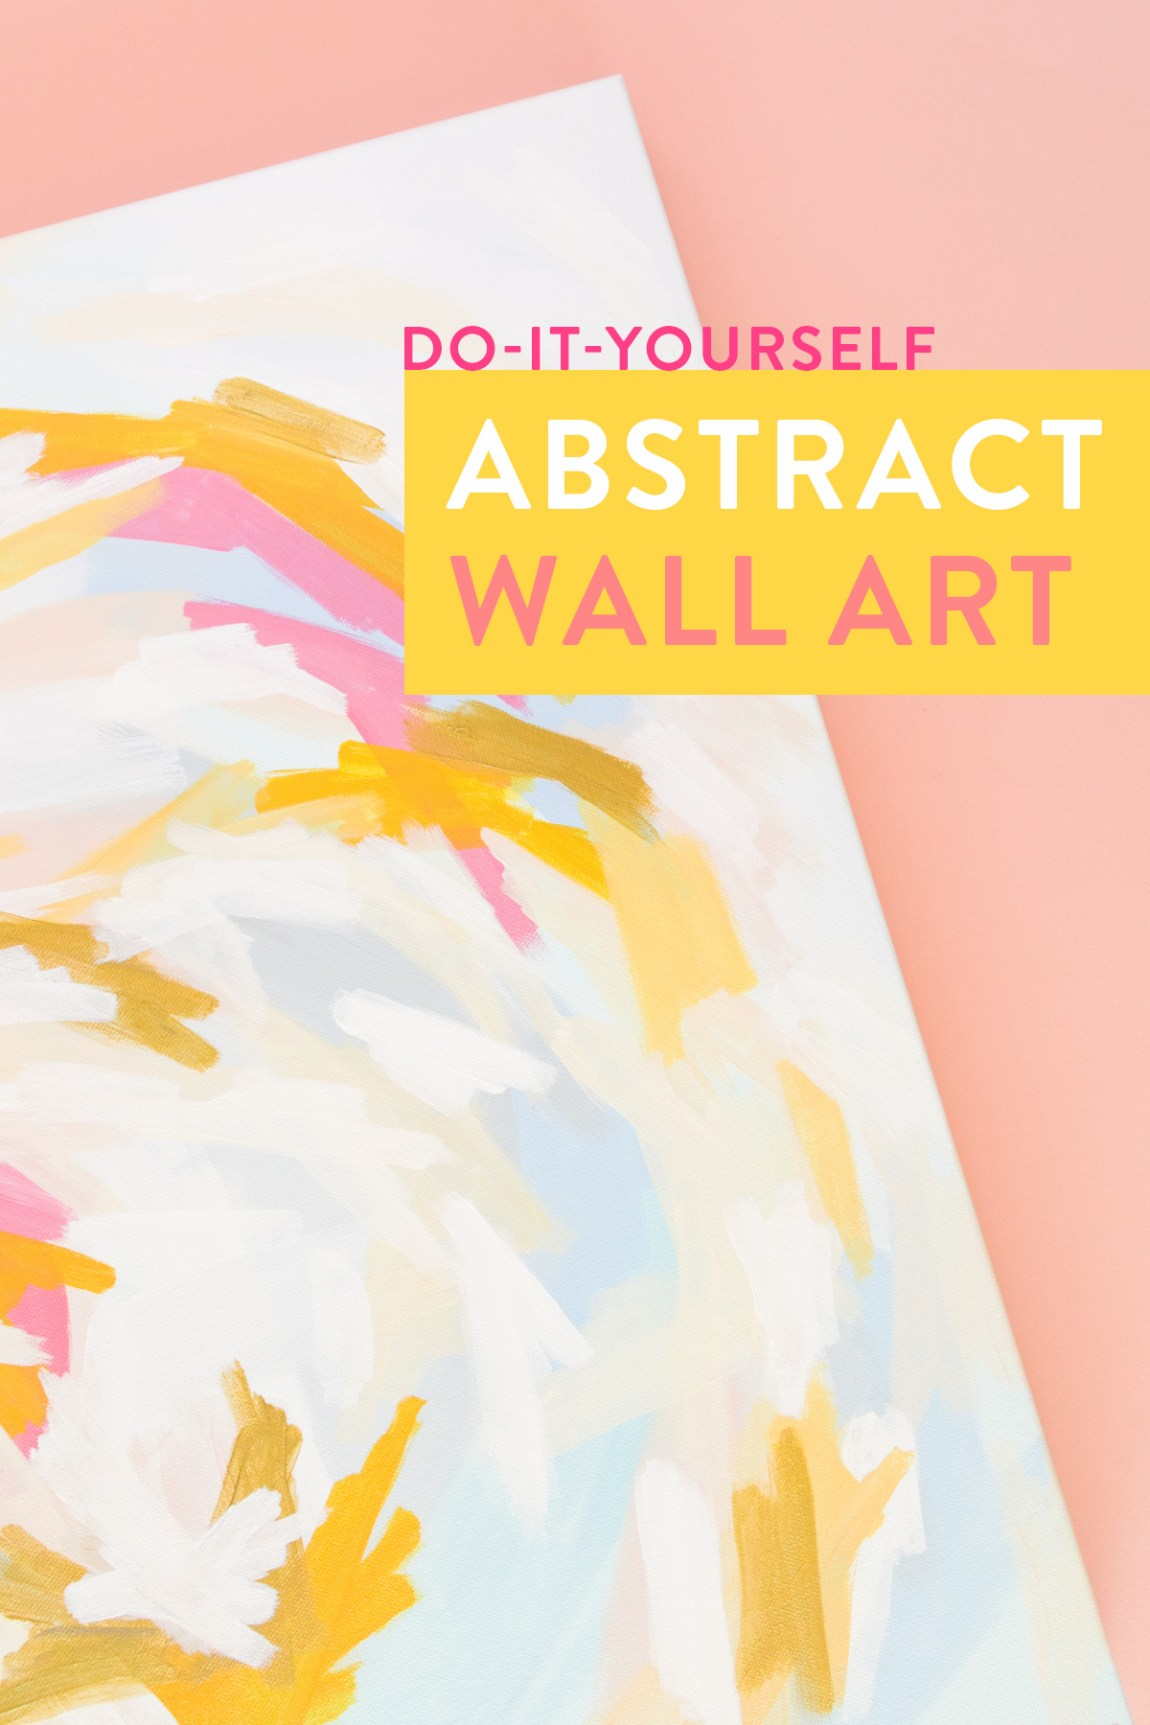 Watch how blogger Sarah Hearts creates her own abstract wall art using DecoArt's Americana Premium acrylic paint.